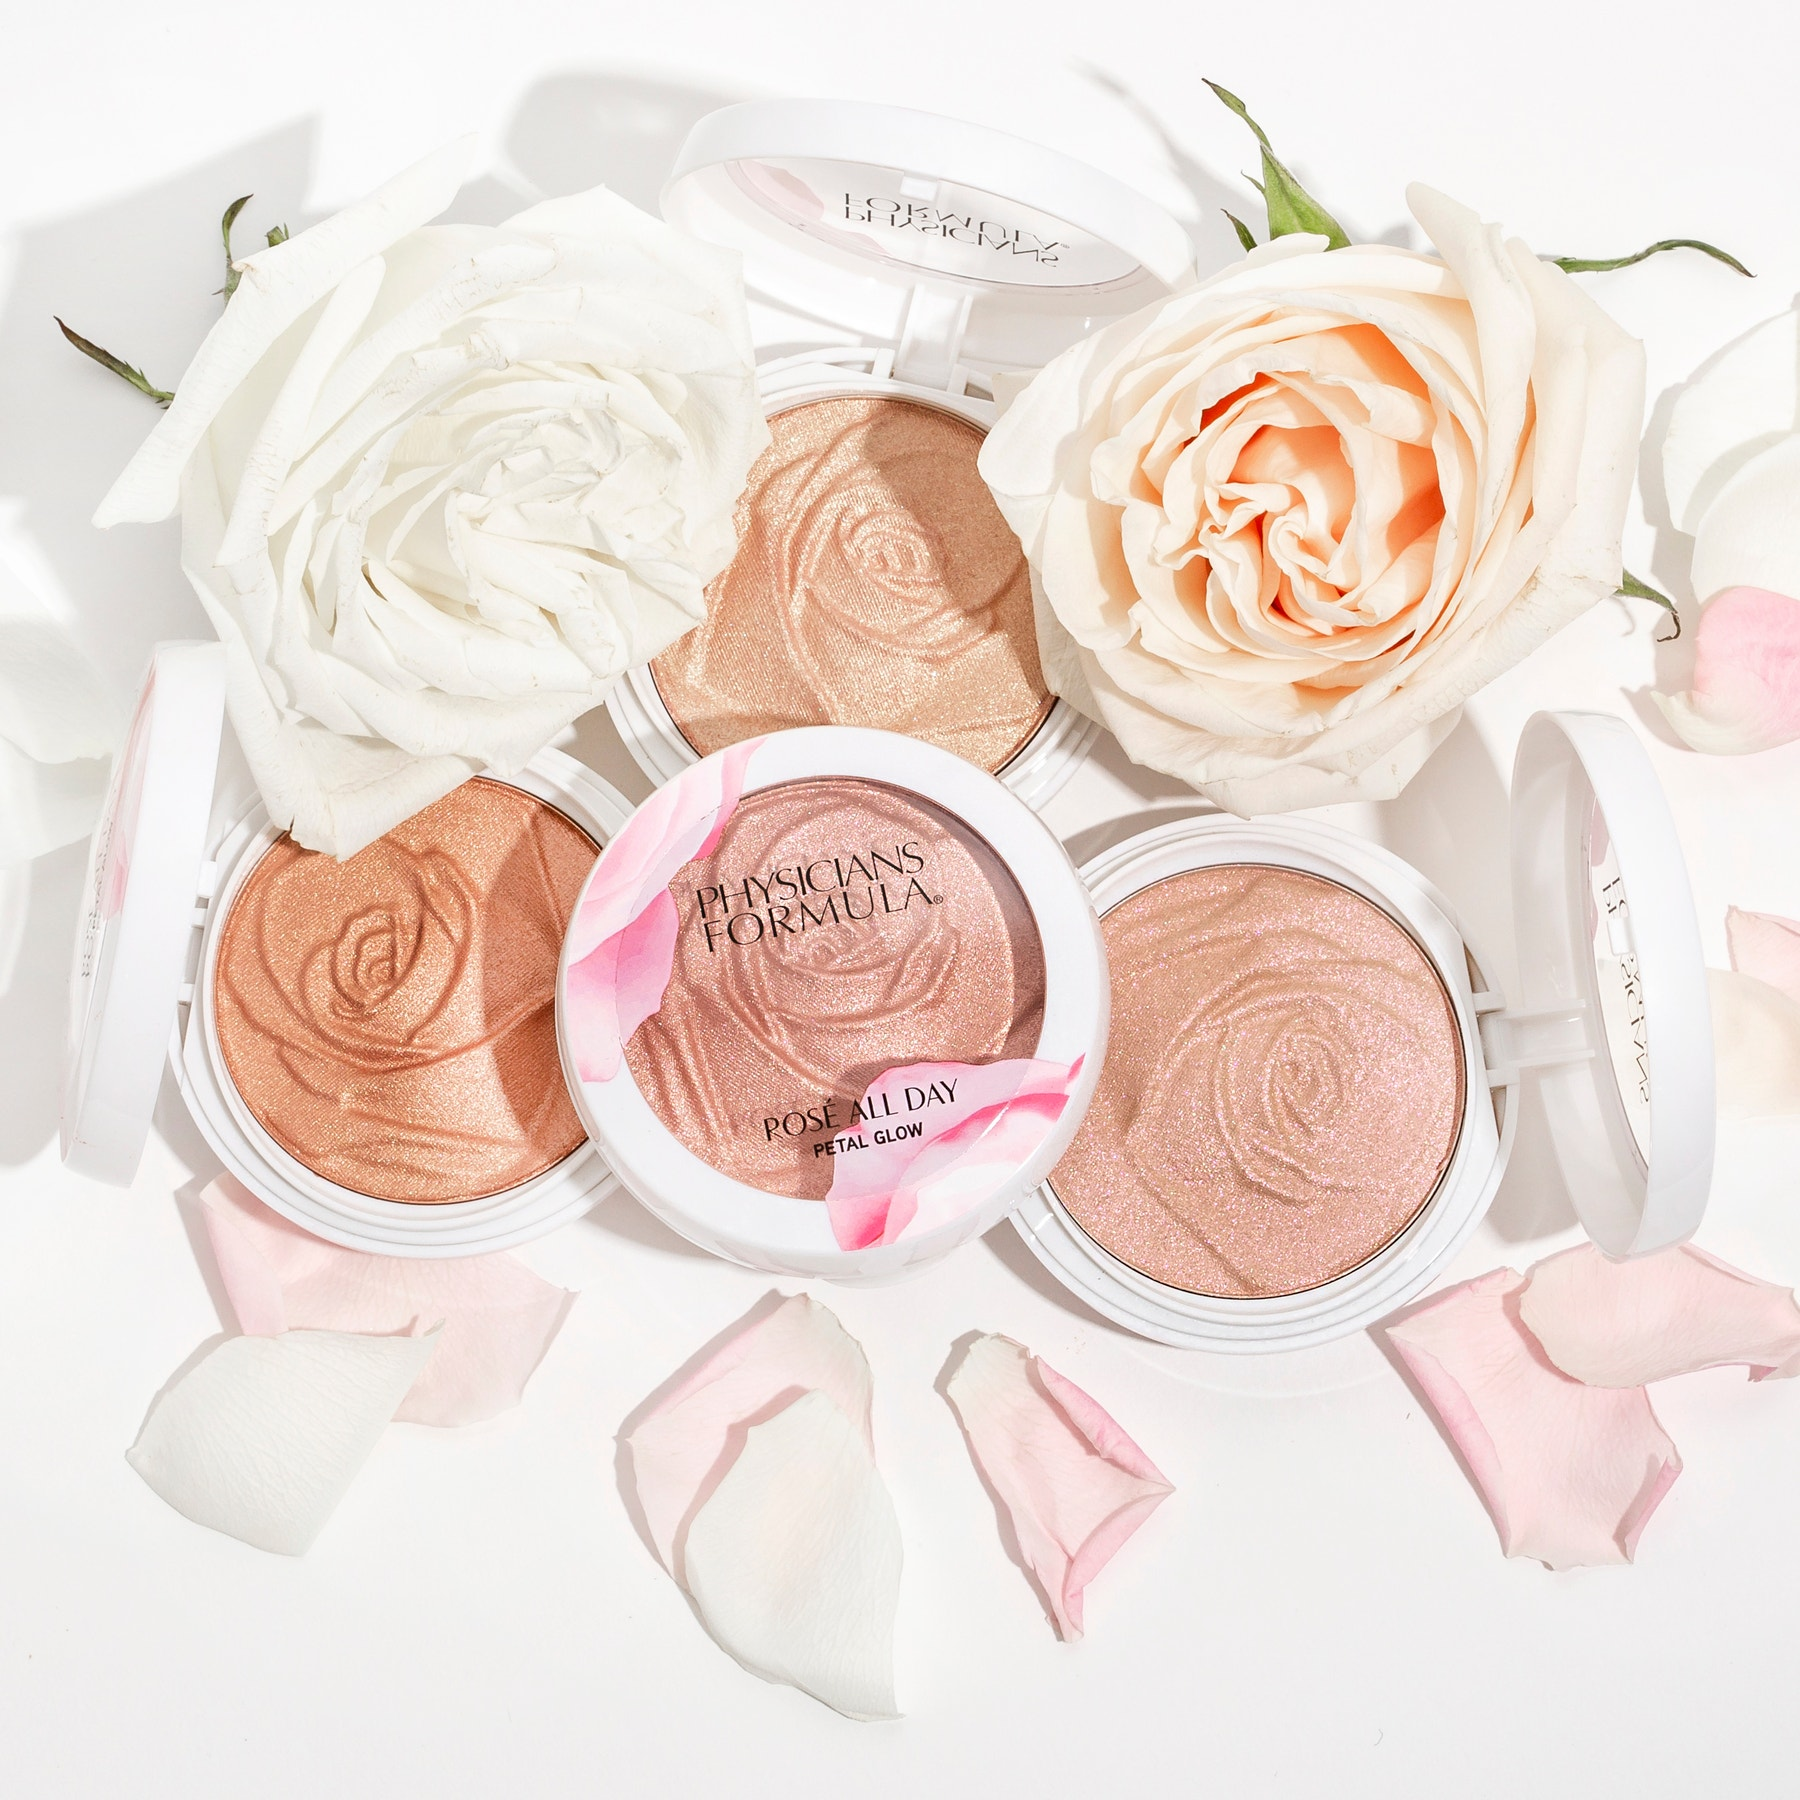 Rosé All Day Petal Glow | Phsicians Formula | Products front facing lids open, with roses and white background